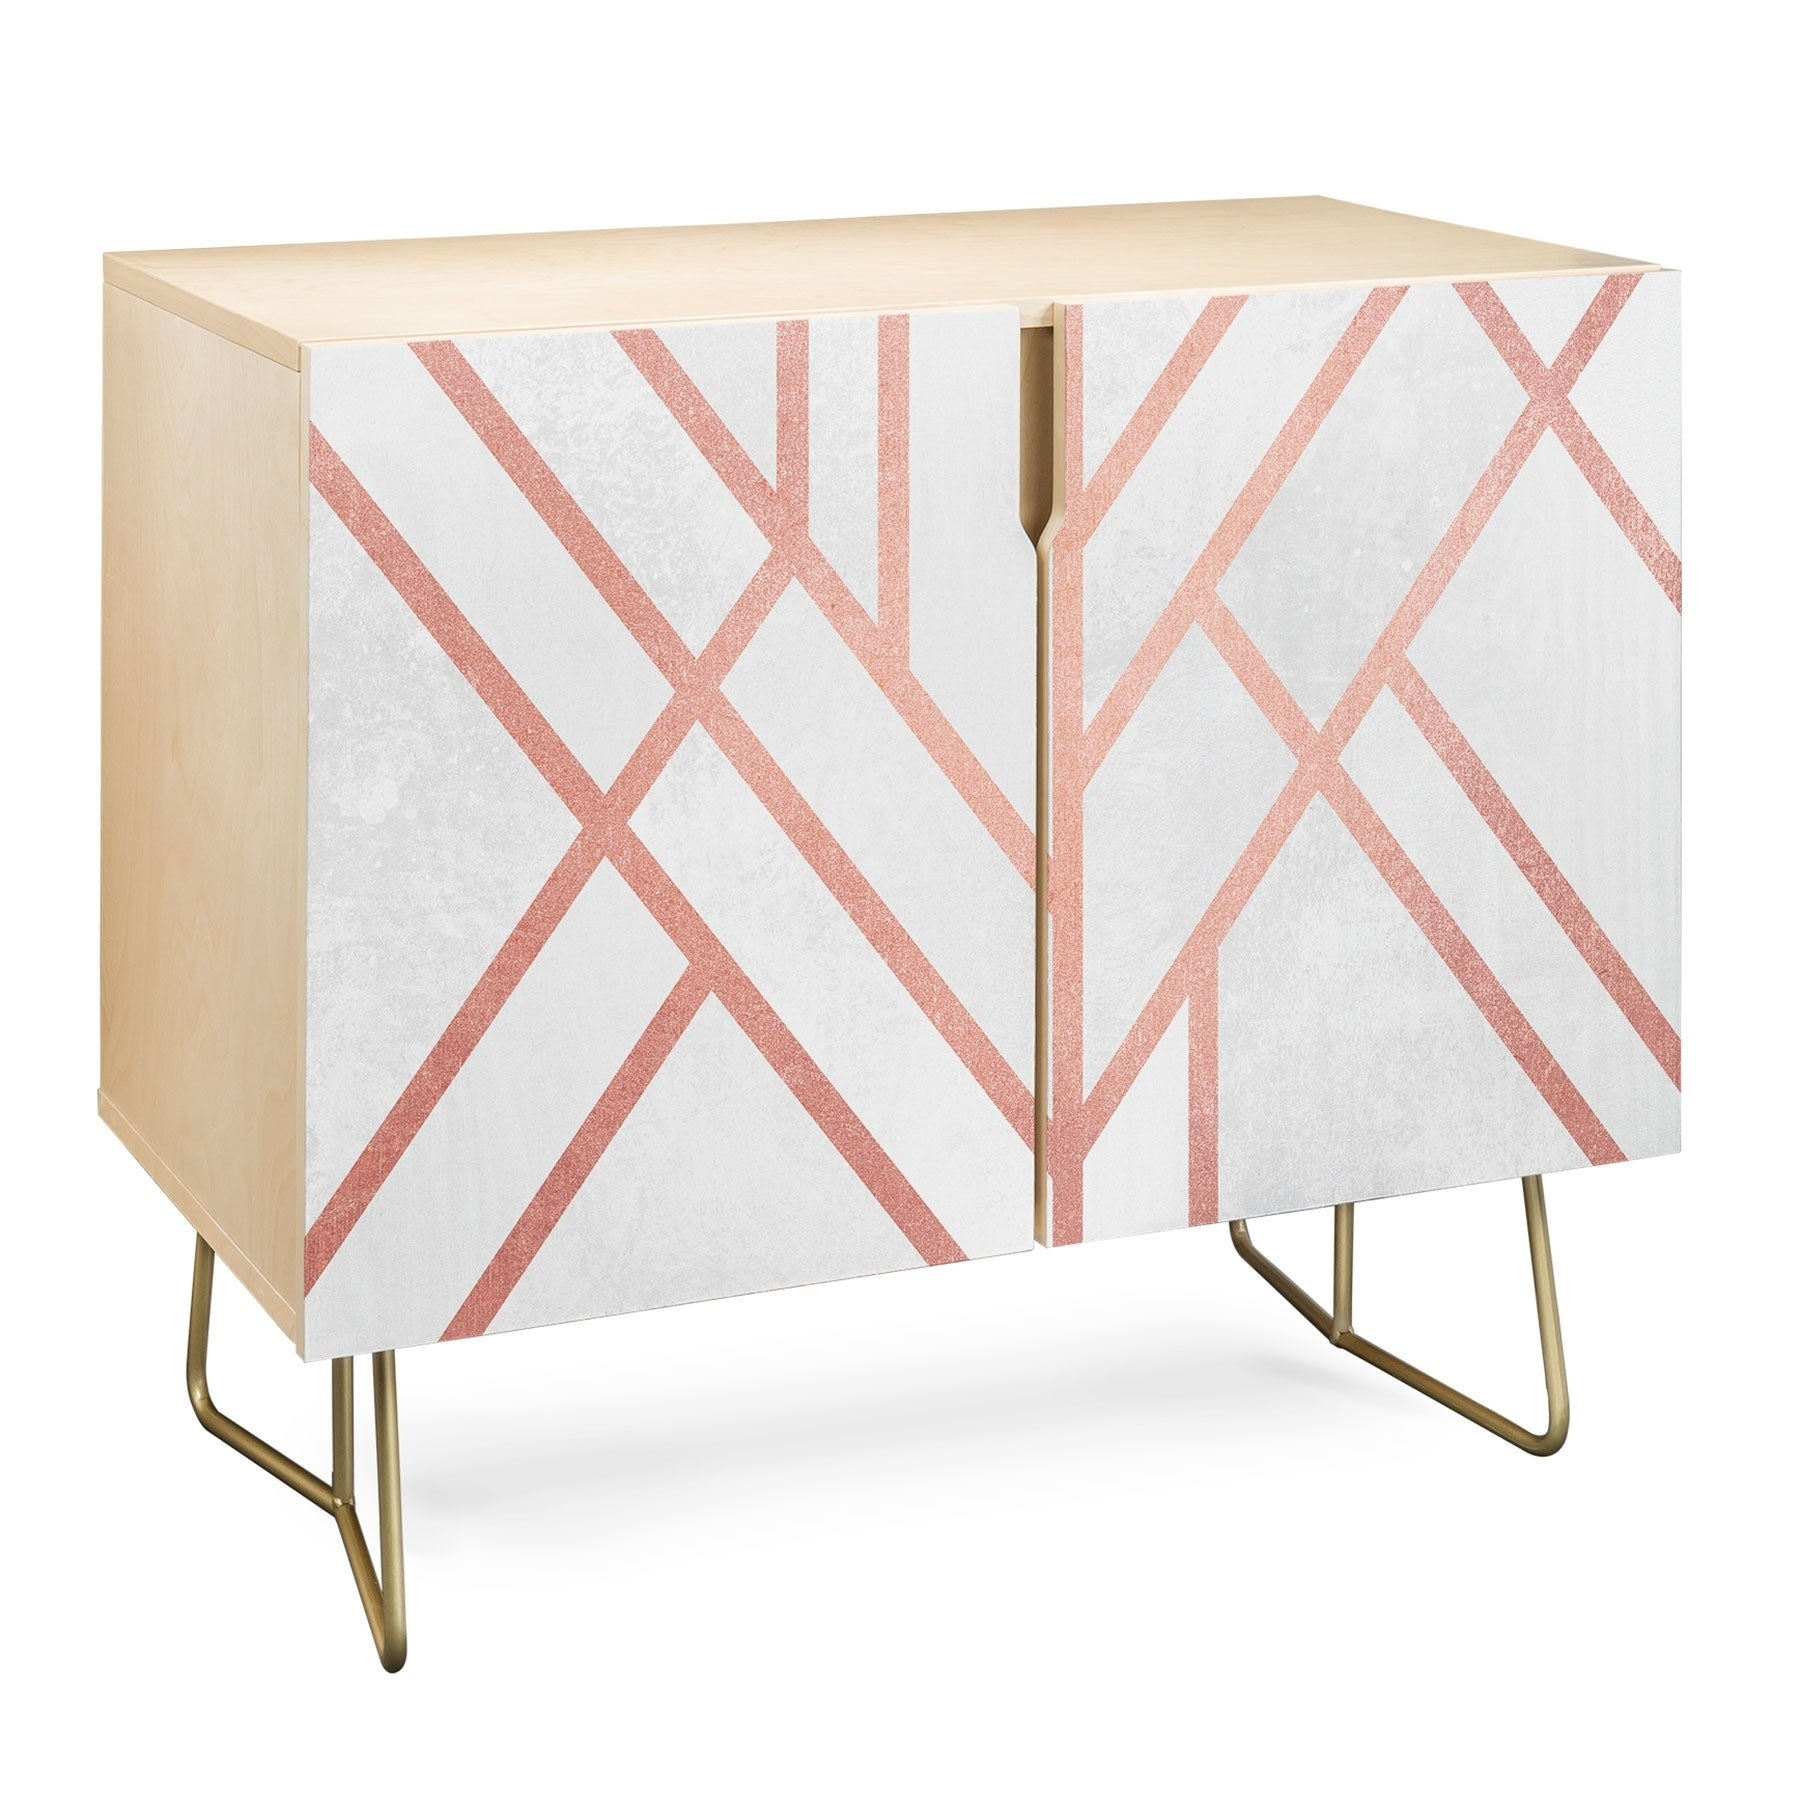 Deny Designs Pink And White Geometric Credenza (Birch Or Walnut, 3 Leg  Options) Intended For Pink And White Geometric Buffets (Photo 3 of 30)